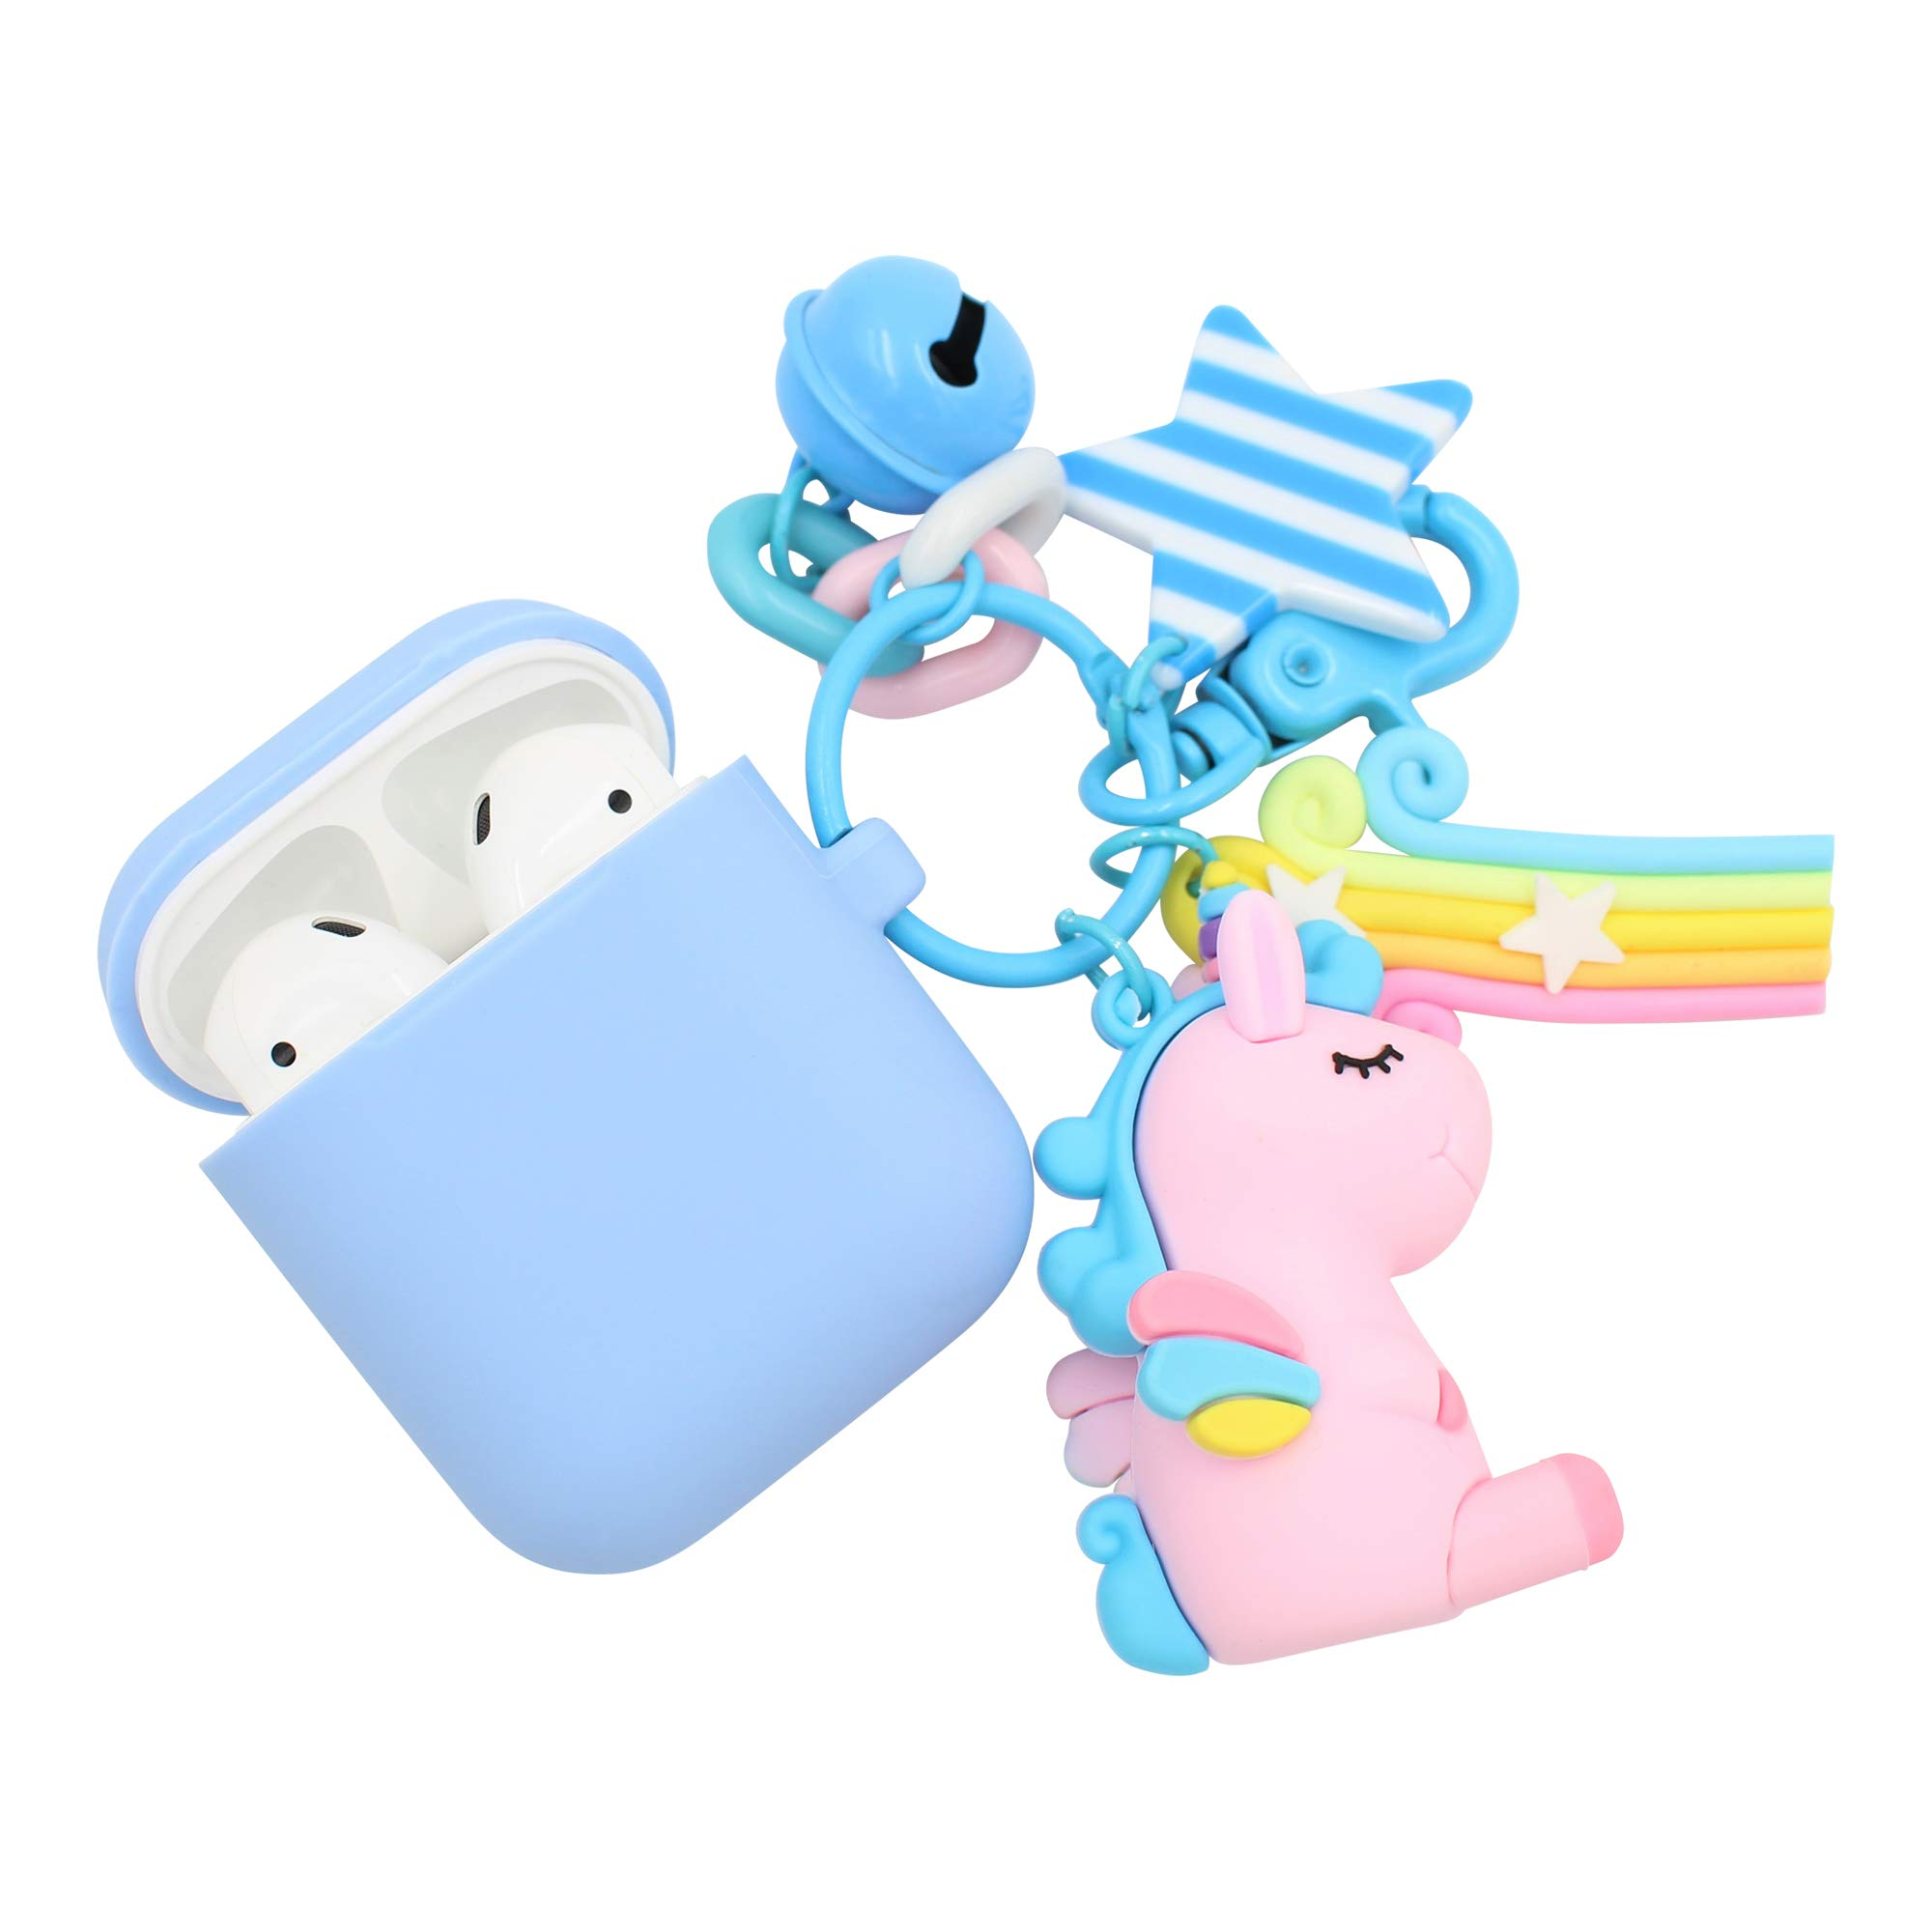 REAL SIC Premium Silicone AirPod Case Keychain with Carabiner - Compatible AirPods Keychain Protective Case - Colorful Key Fob Cover for Wireless Headphones (Powder Blue Unicorn)